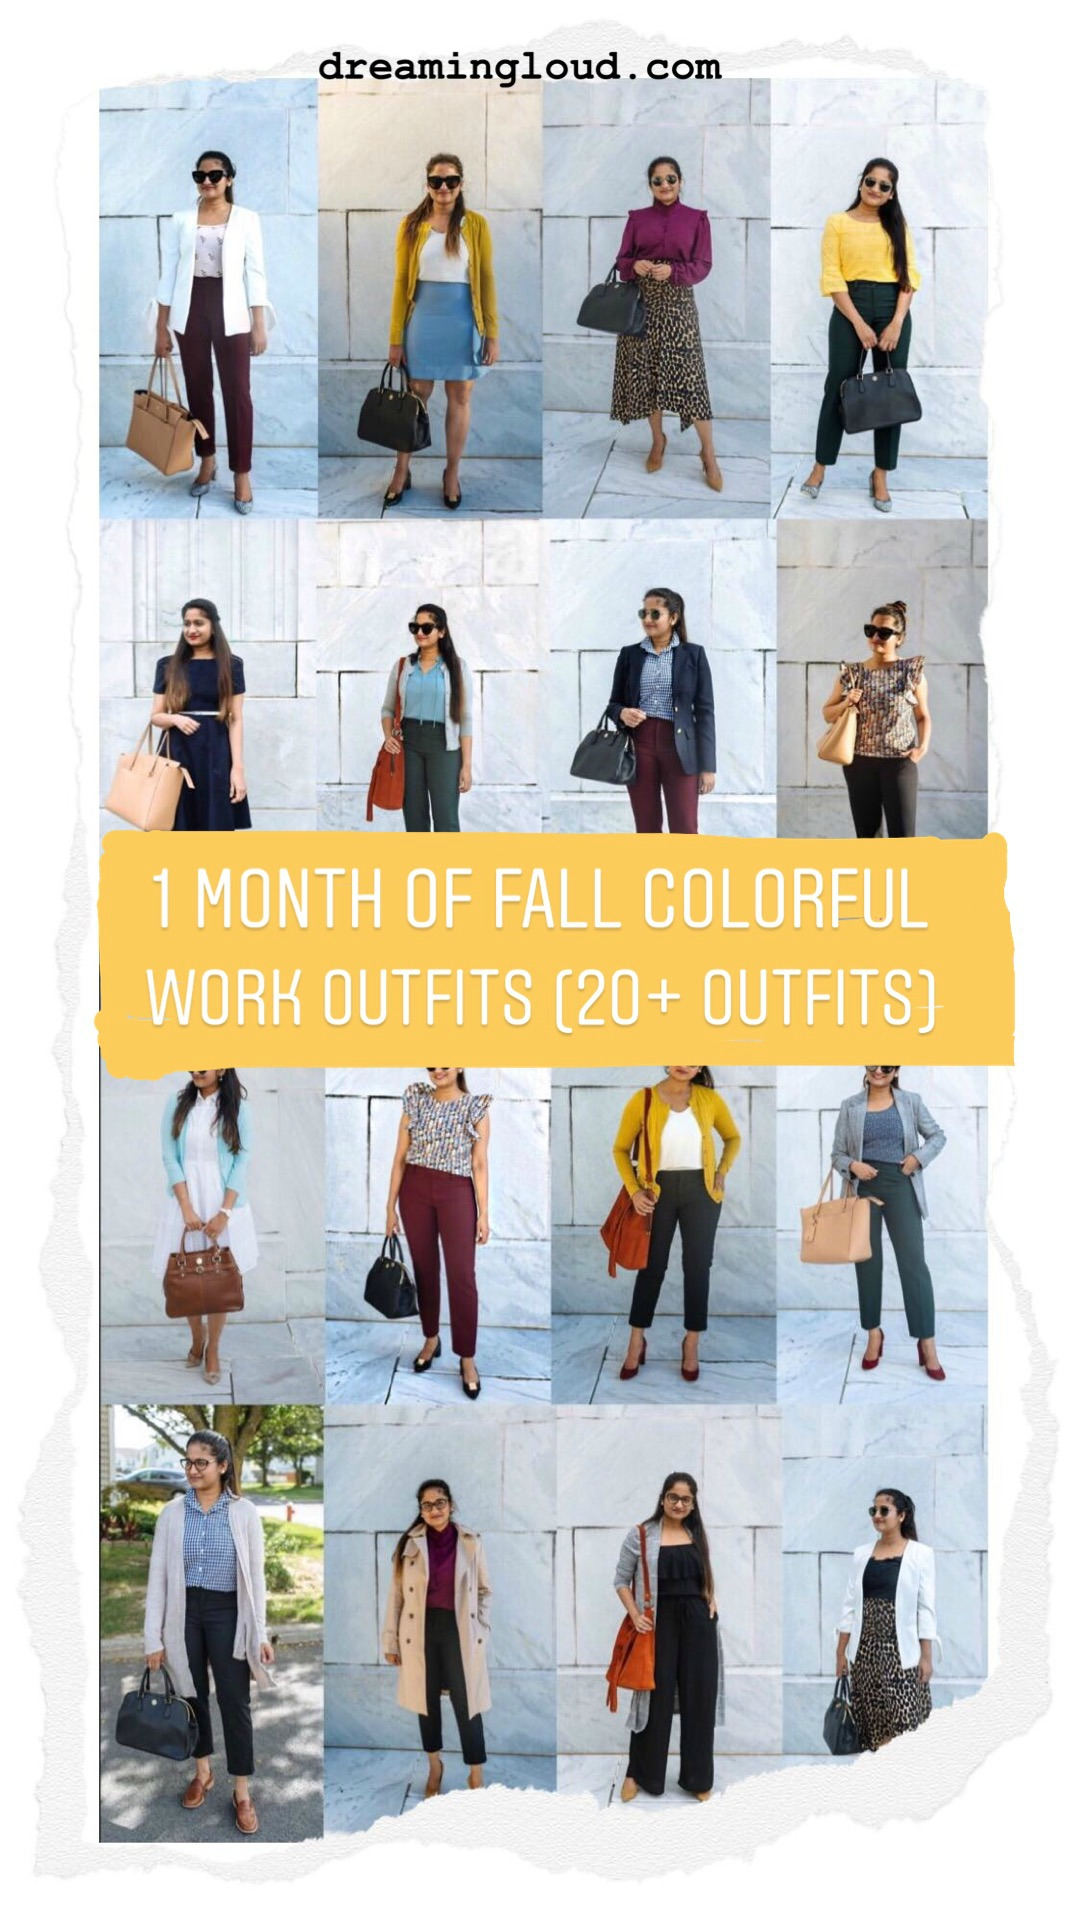 20 Outfit Fall colorful capsule wardrobe | Colorful Fall Work Outfits featured by popular US modest fashion blogger, Dreaming Loud